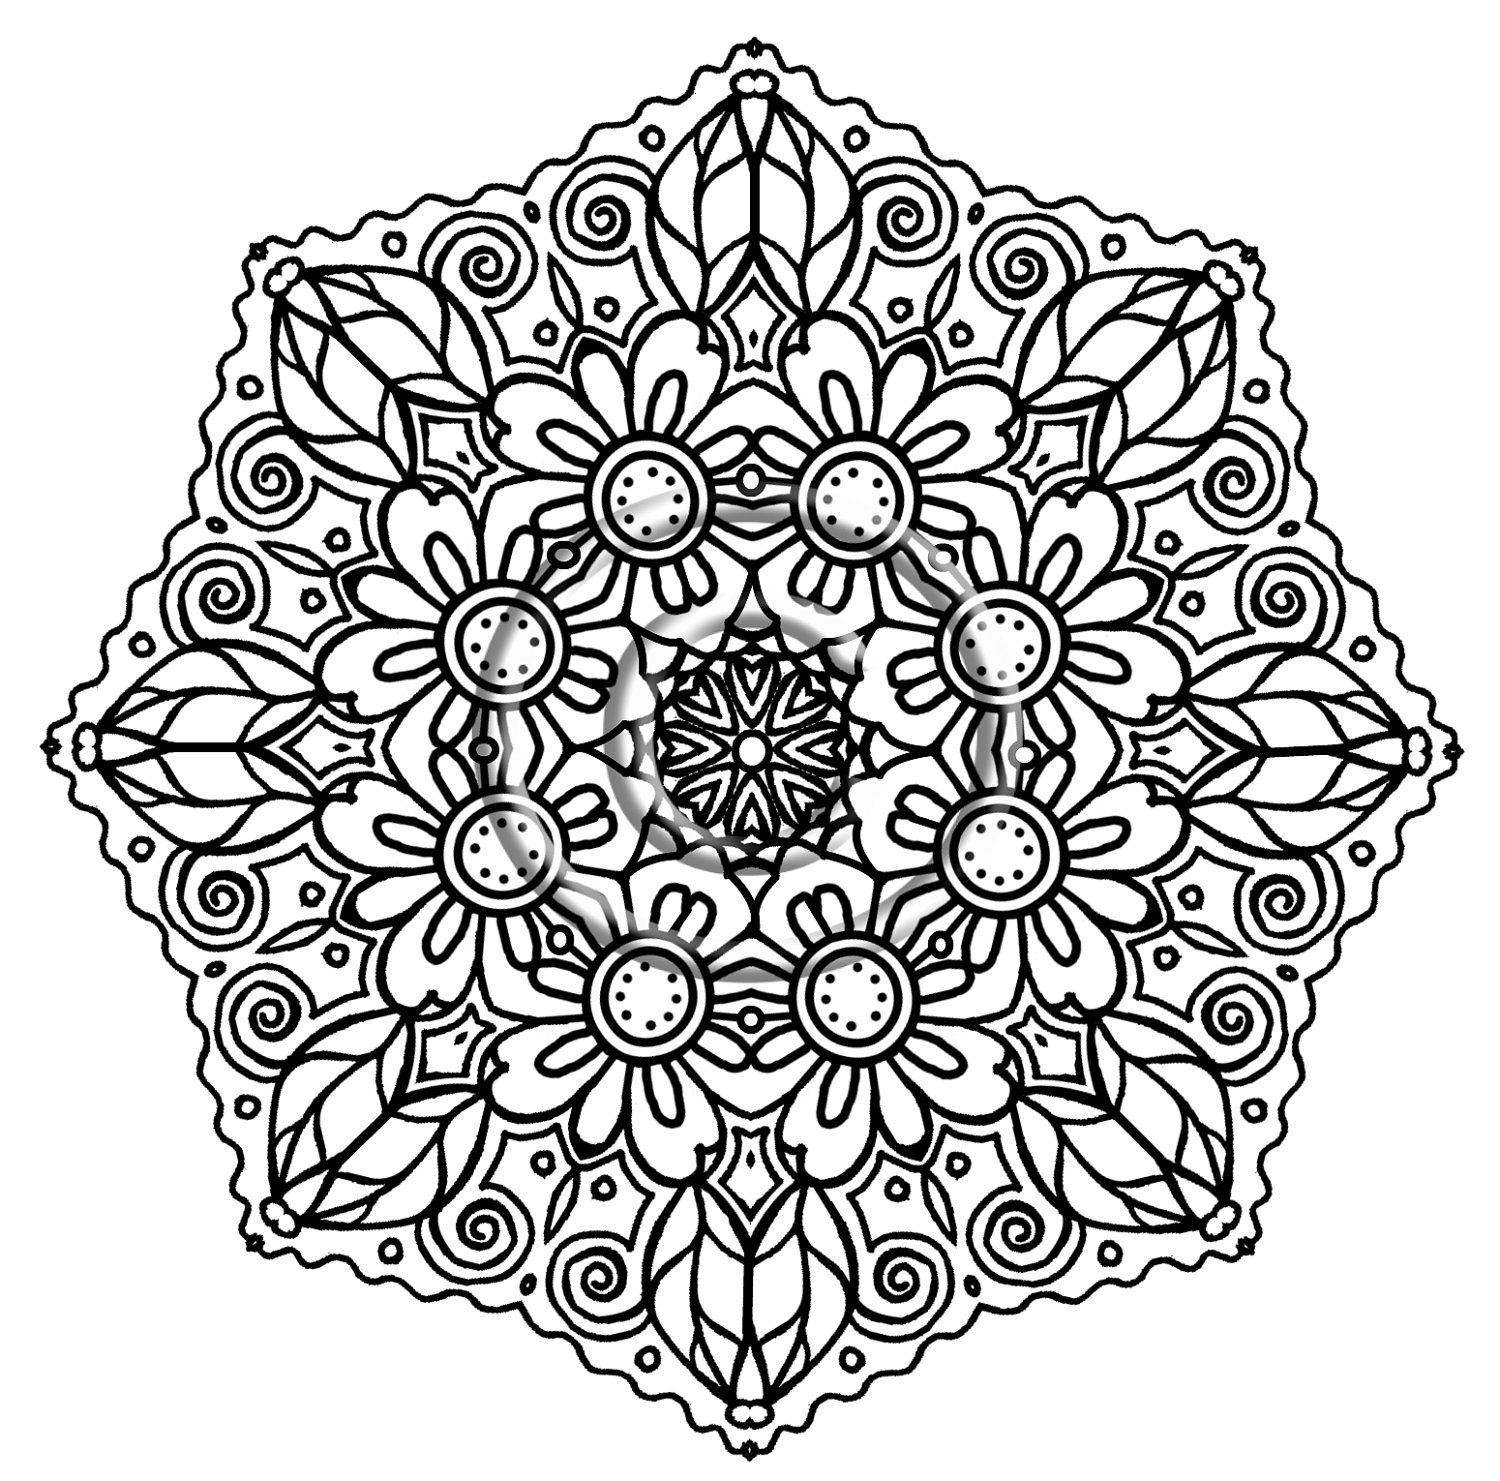 flower printable coloring pages detailed flower coloring pages to download and print for free coloring pages printable flower